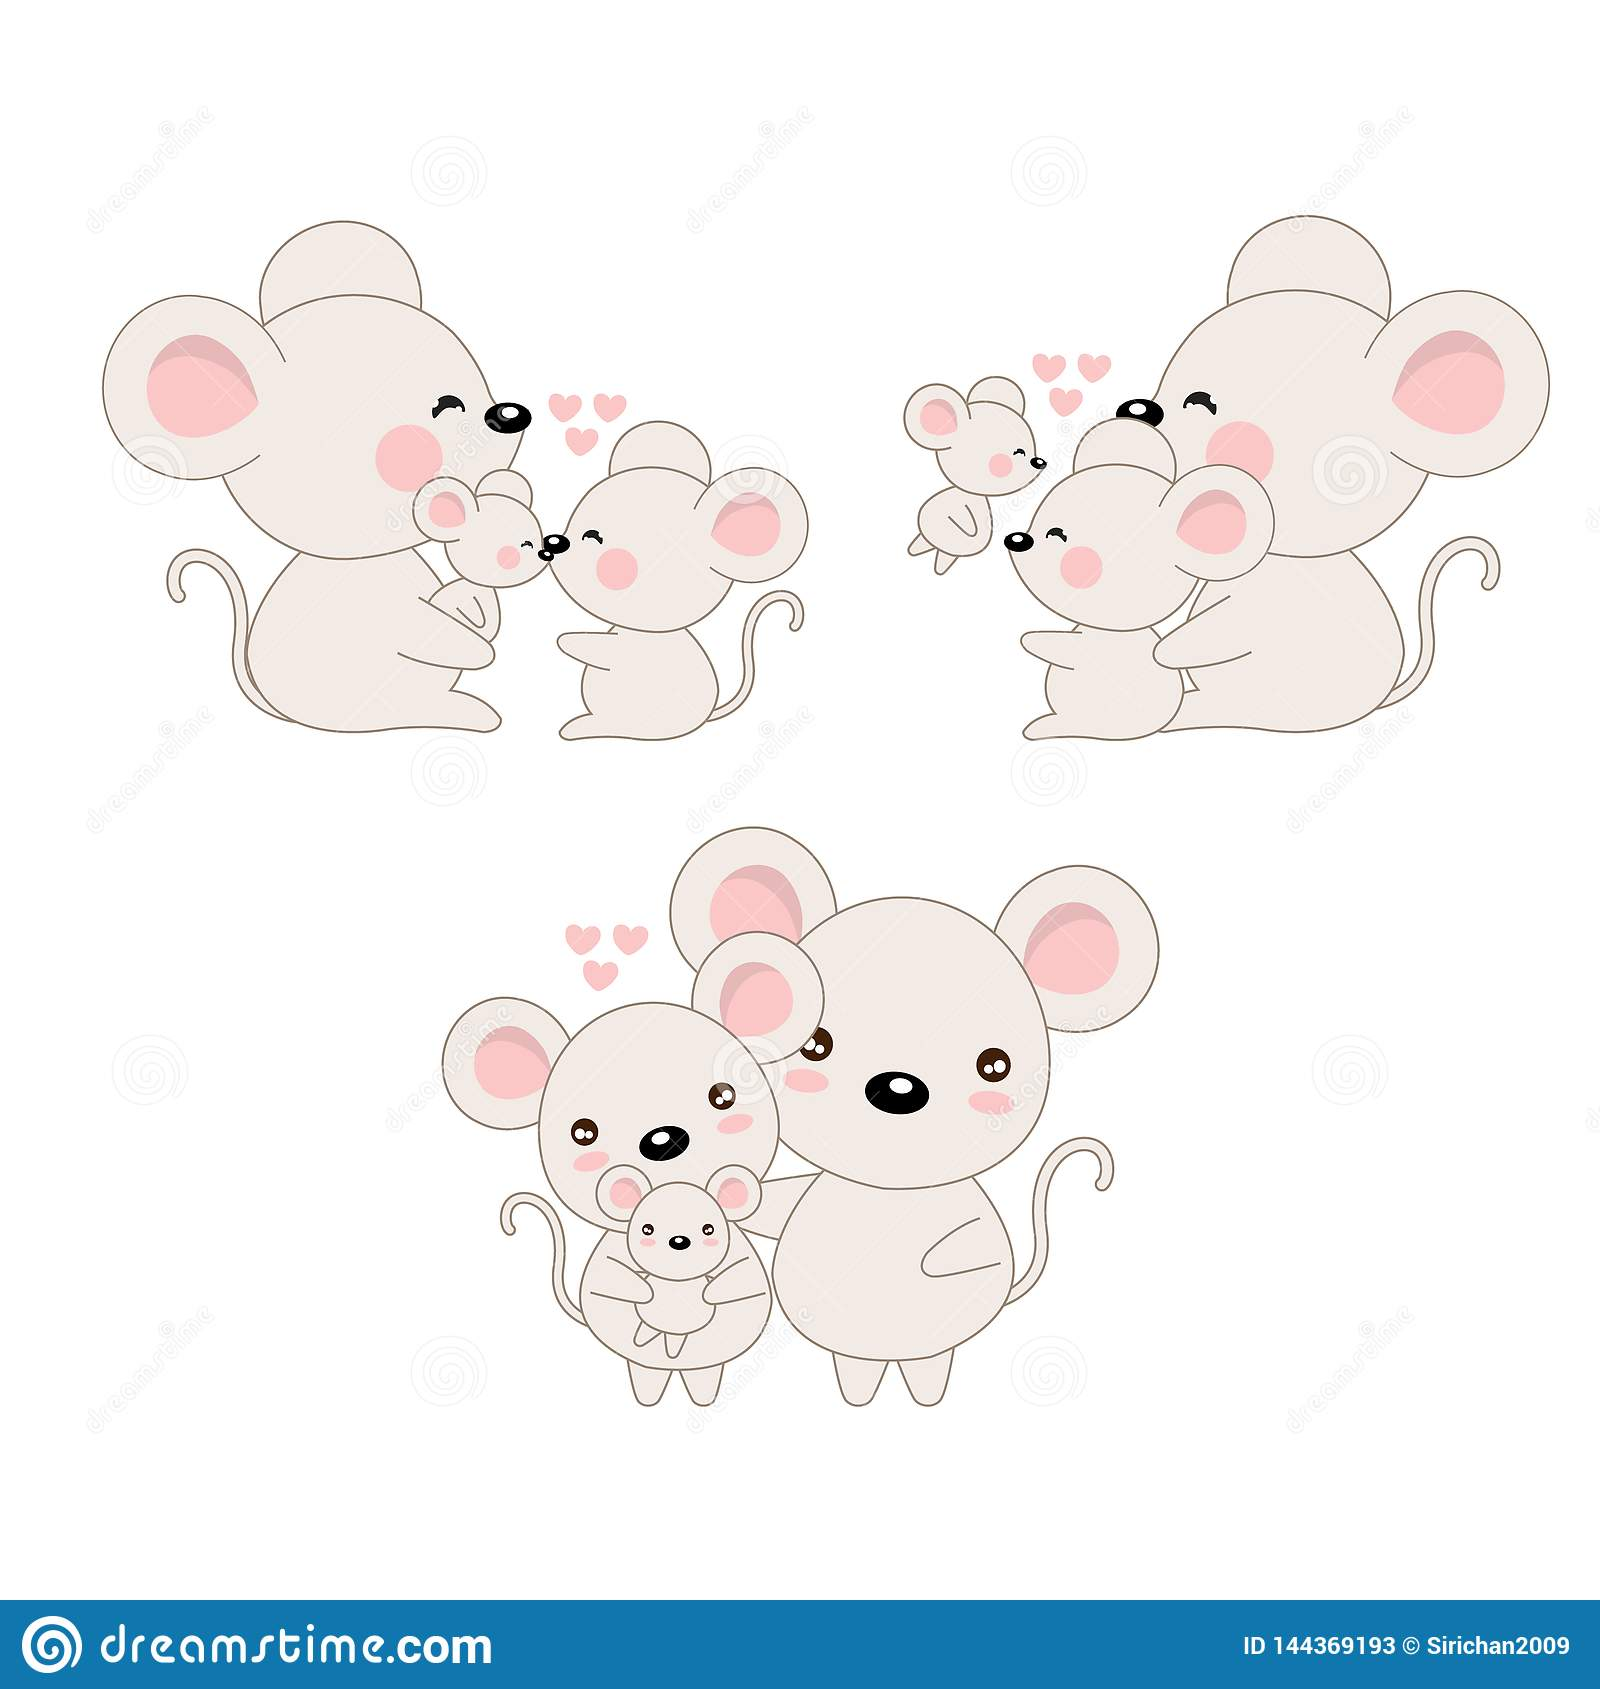 Cute cartoon family mouse and baby.